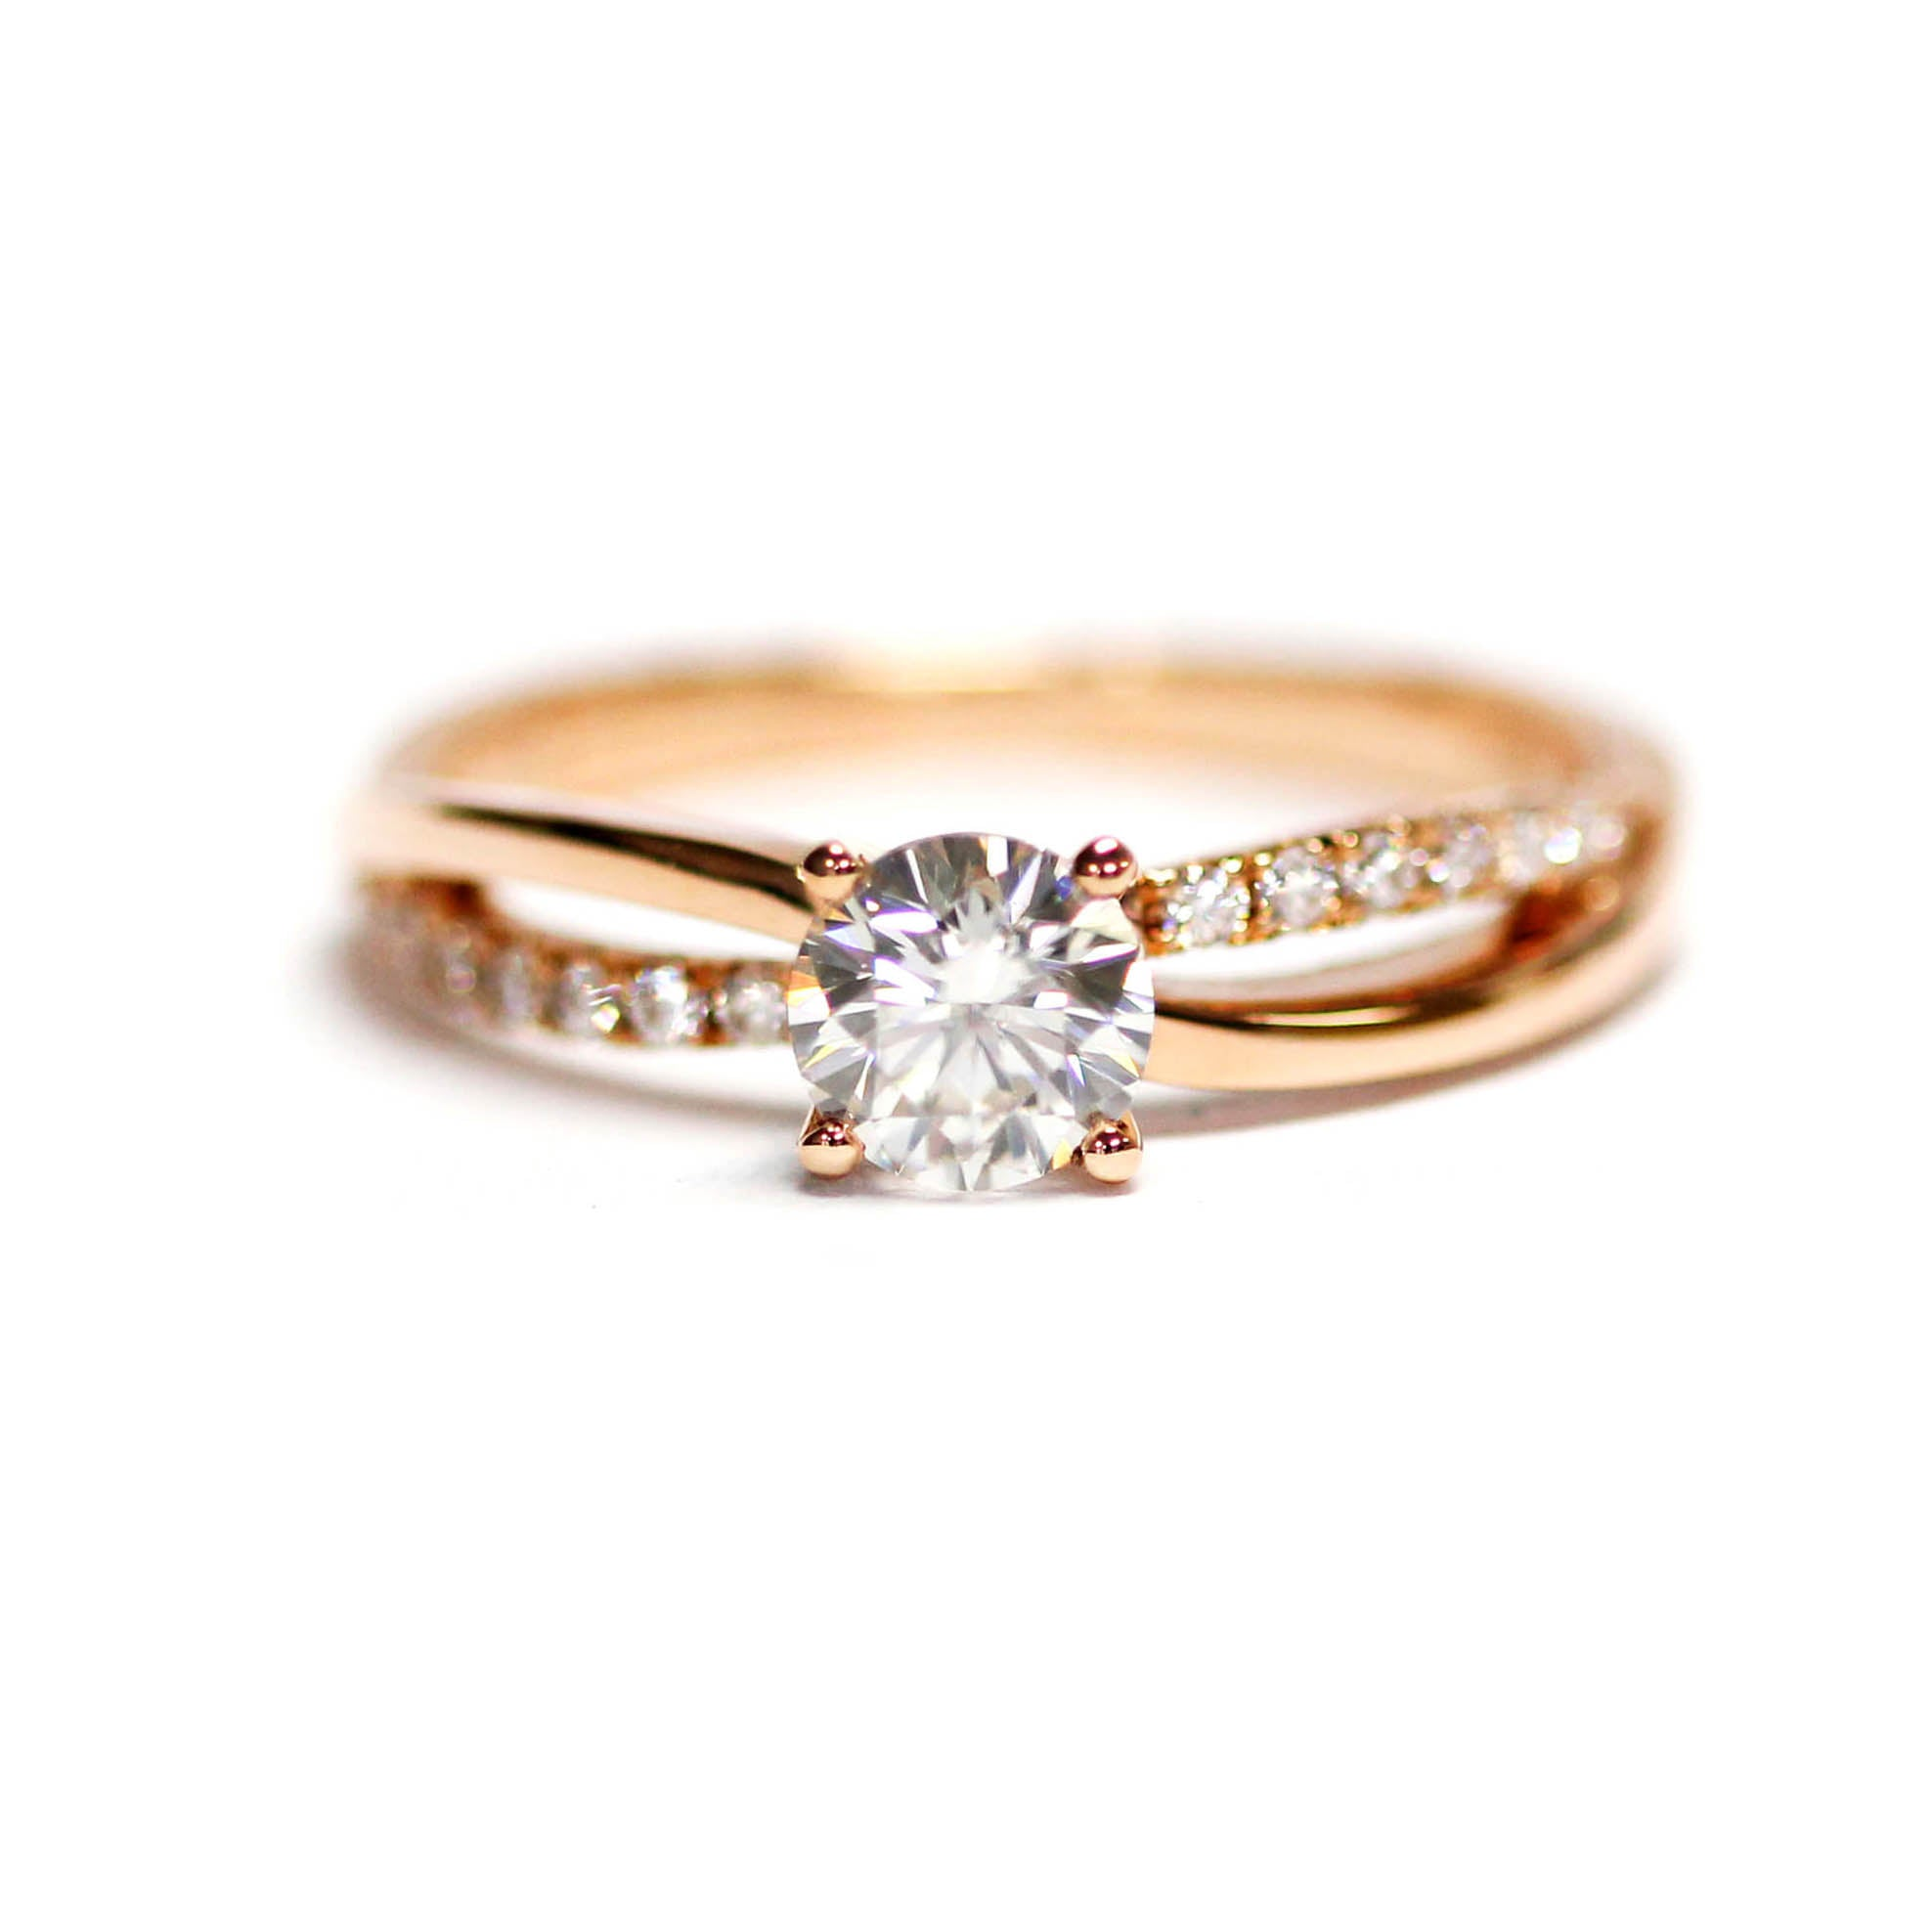 0.5 carat Round Moissanite Solitaire Accents 18K Rose Gold Ring